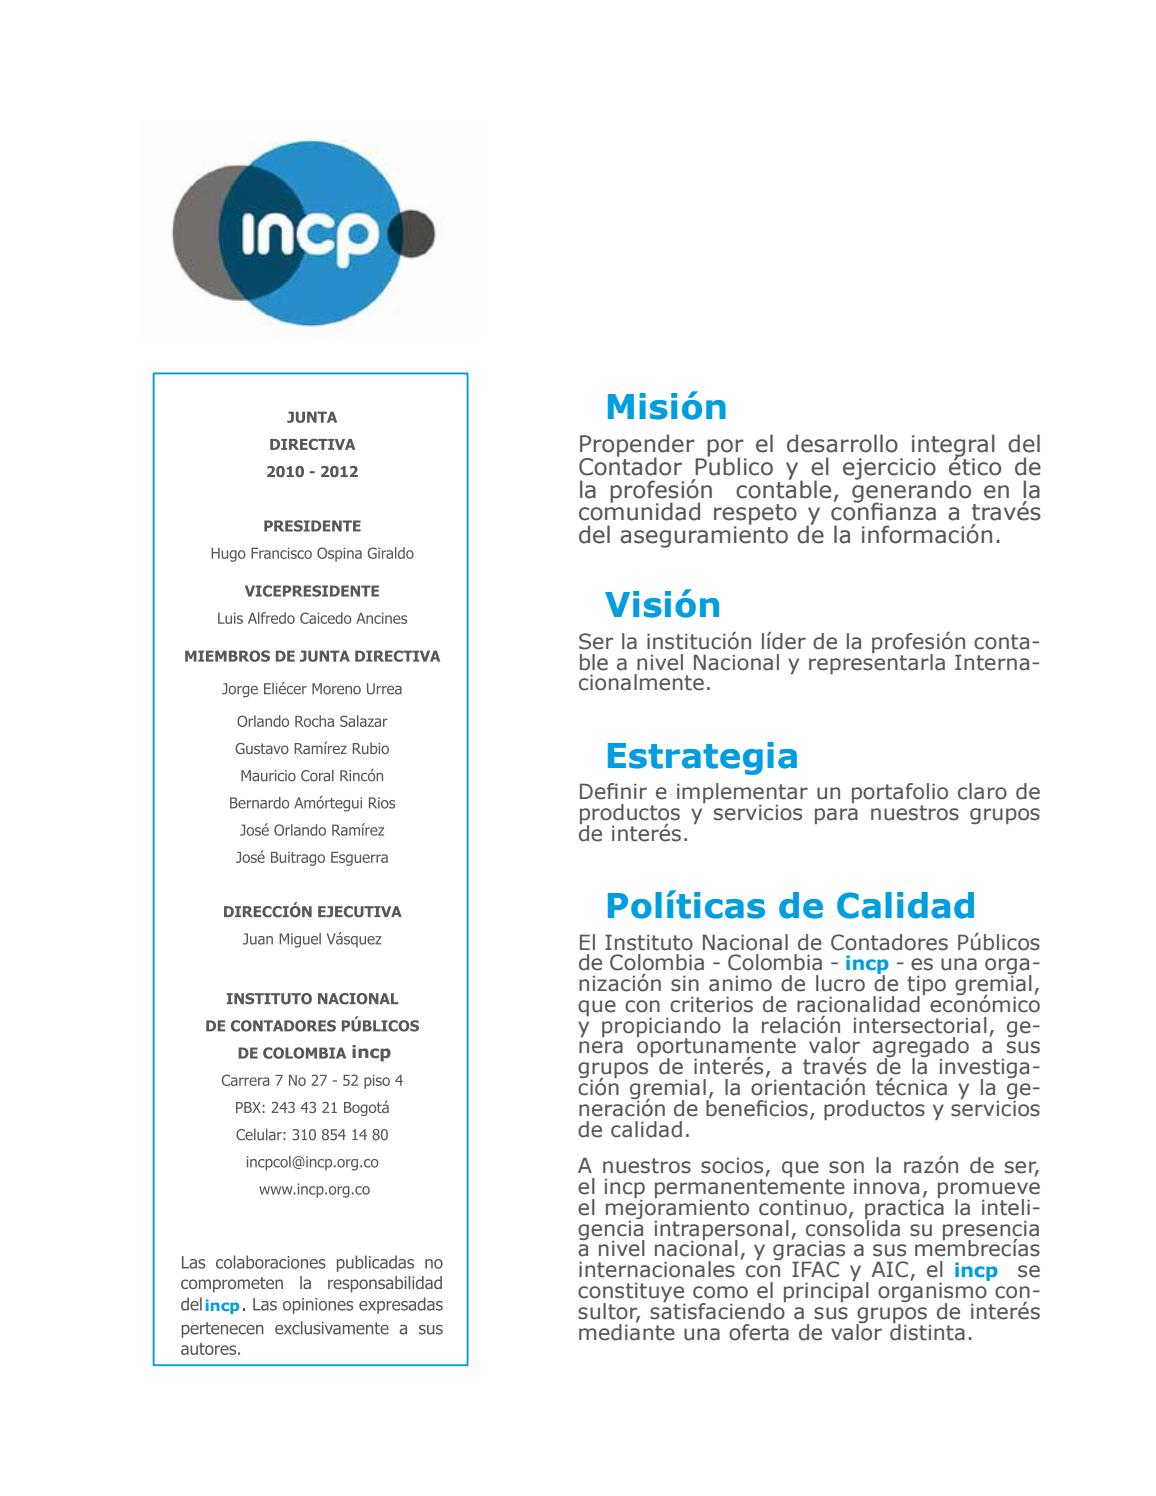 Agenda & Análisis Tributario 2012 by INCP - issuu